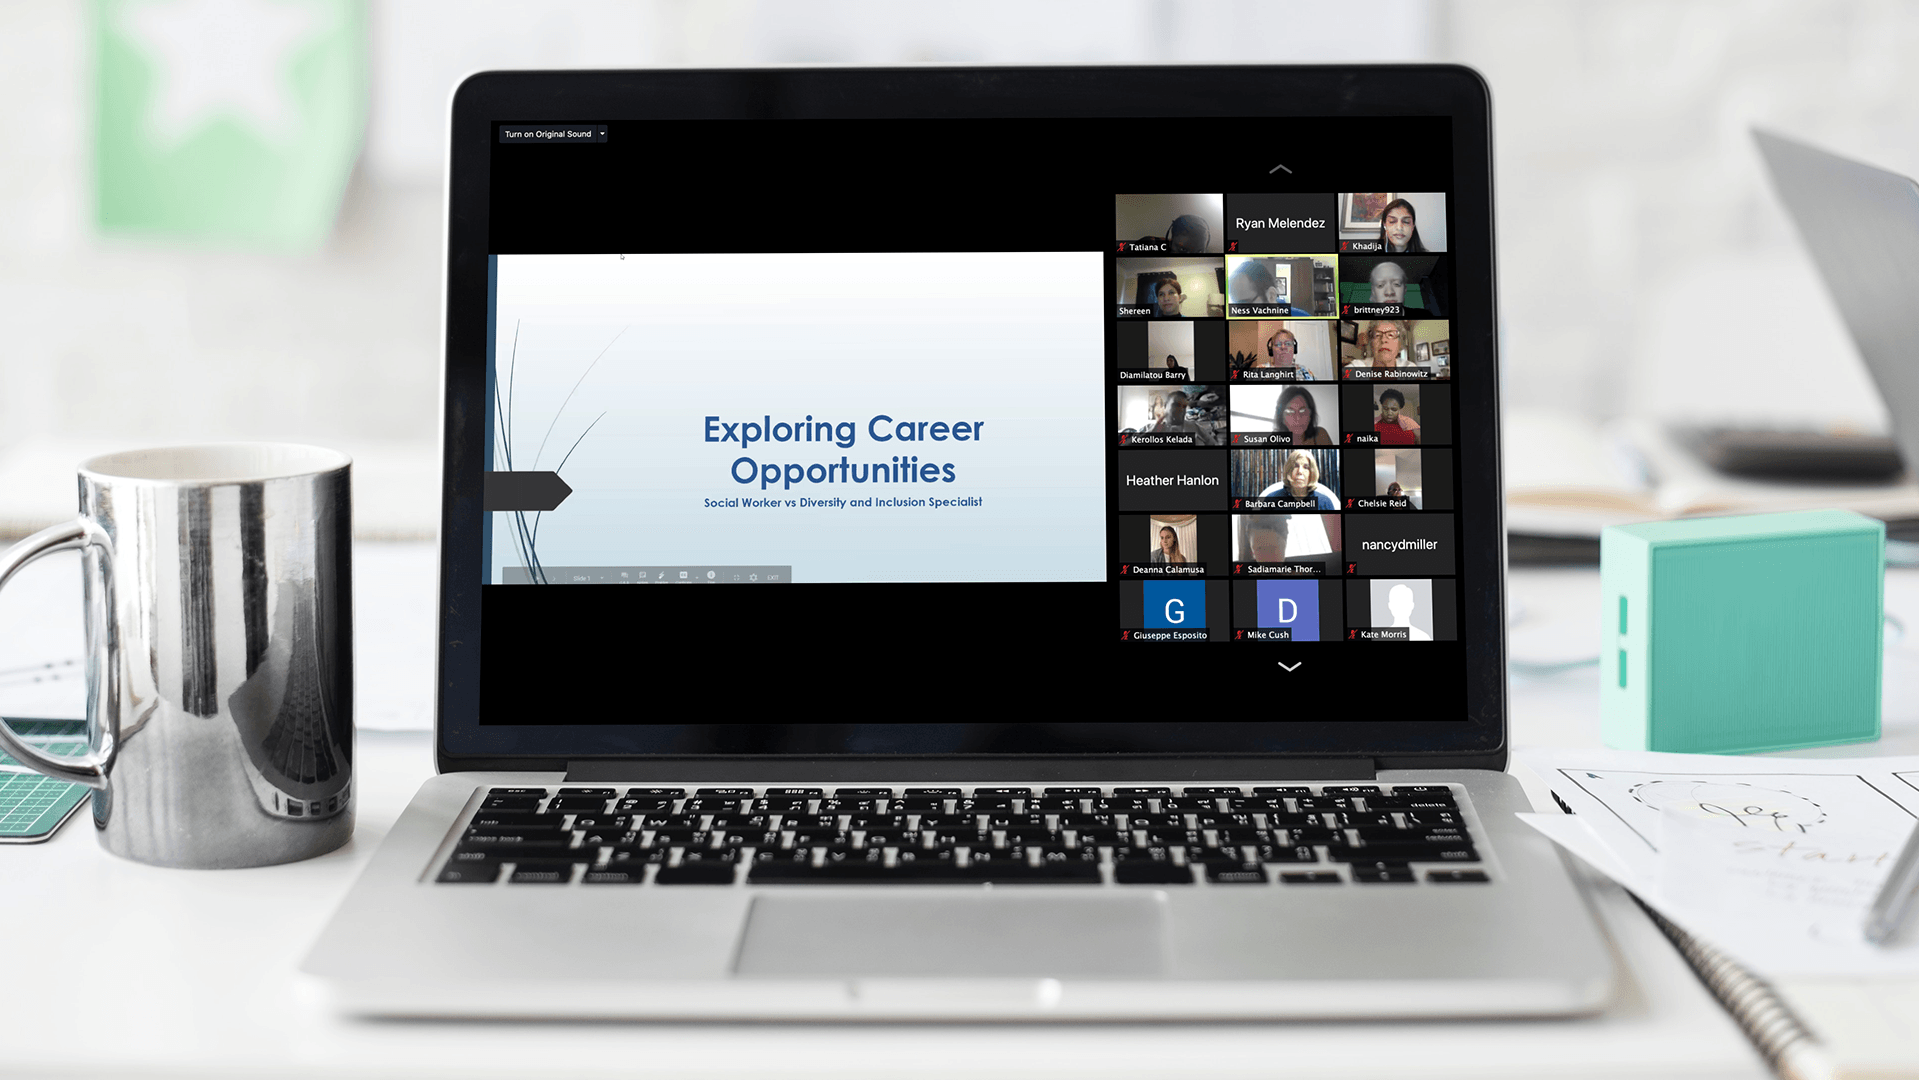 A laptop features a Zoom conference with a PowerPoint on screen, being shared with more than 21 participants.